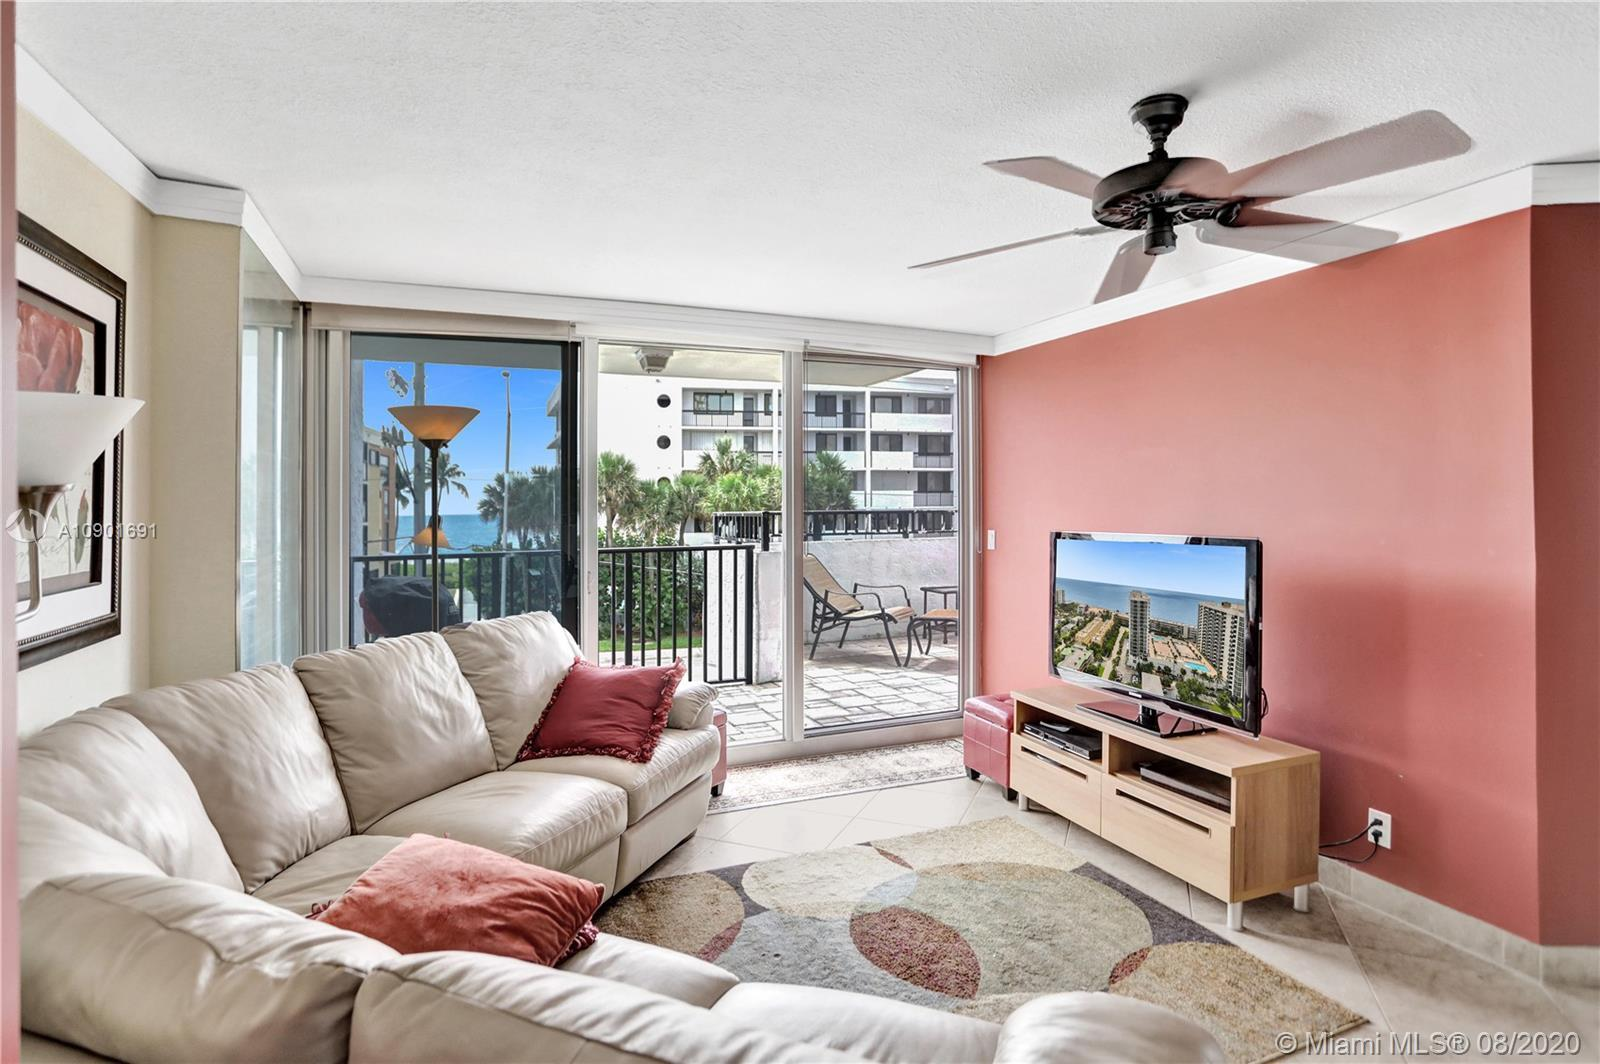 This ONE OF A KIND END UNIT LANAI features: DIRECT ocean views,  DIRECT OUTDOOR ACCESS FROM 5 hurric